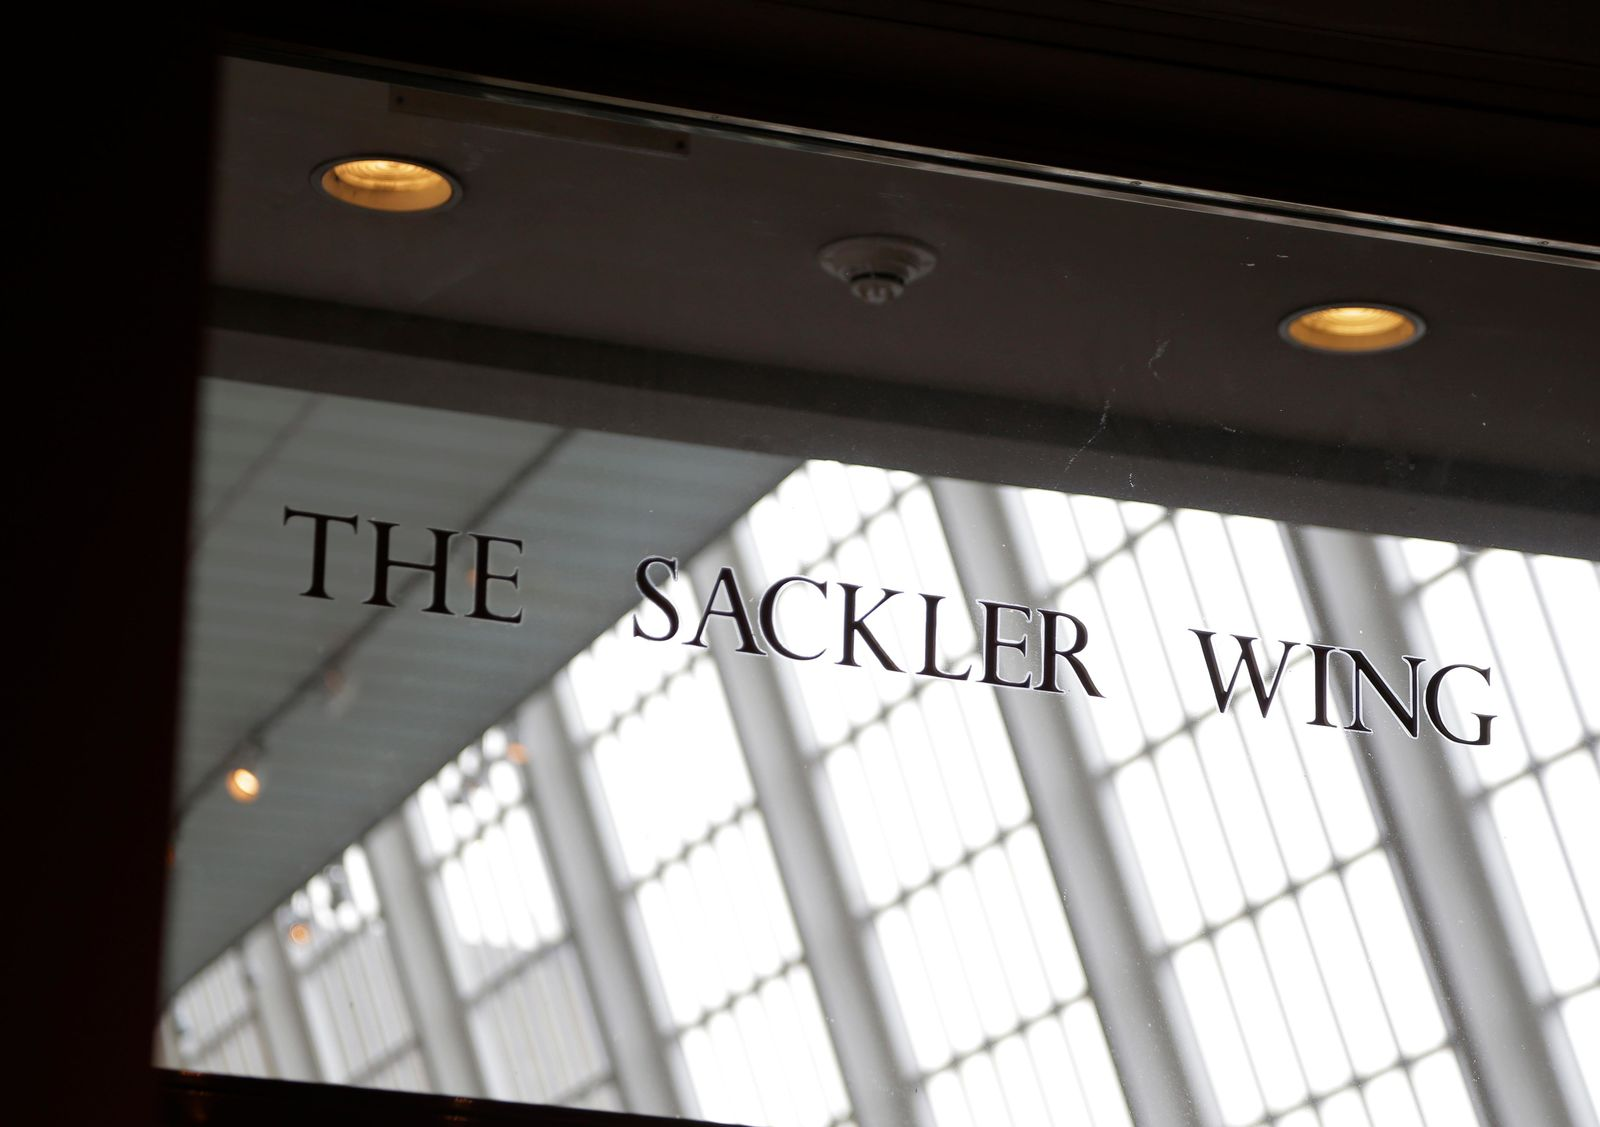 A sign with the Sackler name is displayed at the Metropolitan Museum of Art in New York, Thursday, Jan. 17, 2019.{ } (AP Photo/Seth Wenig)